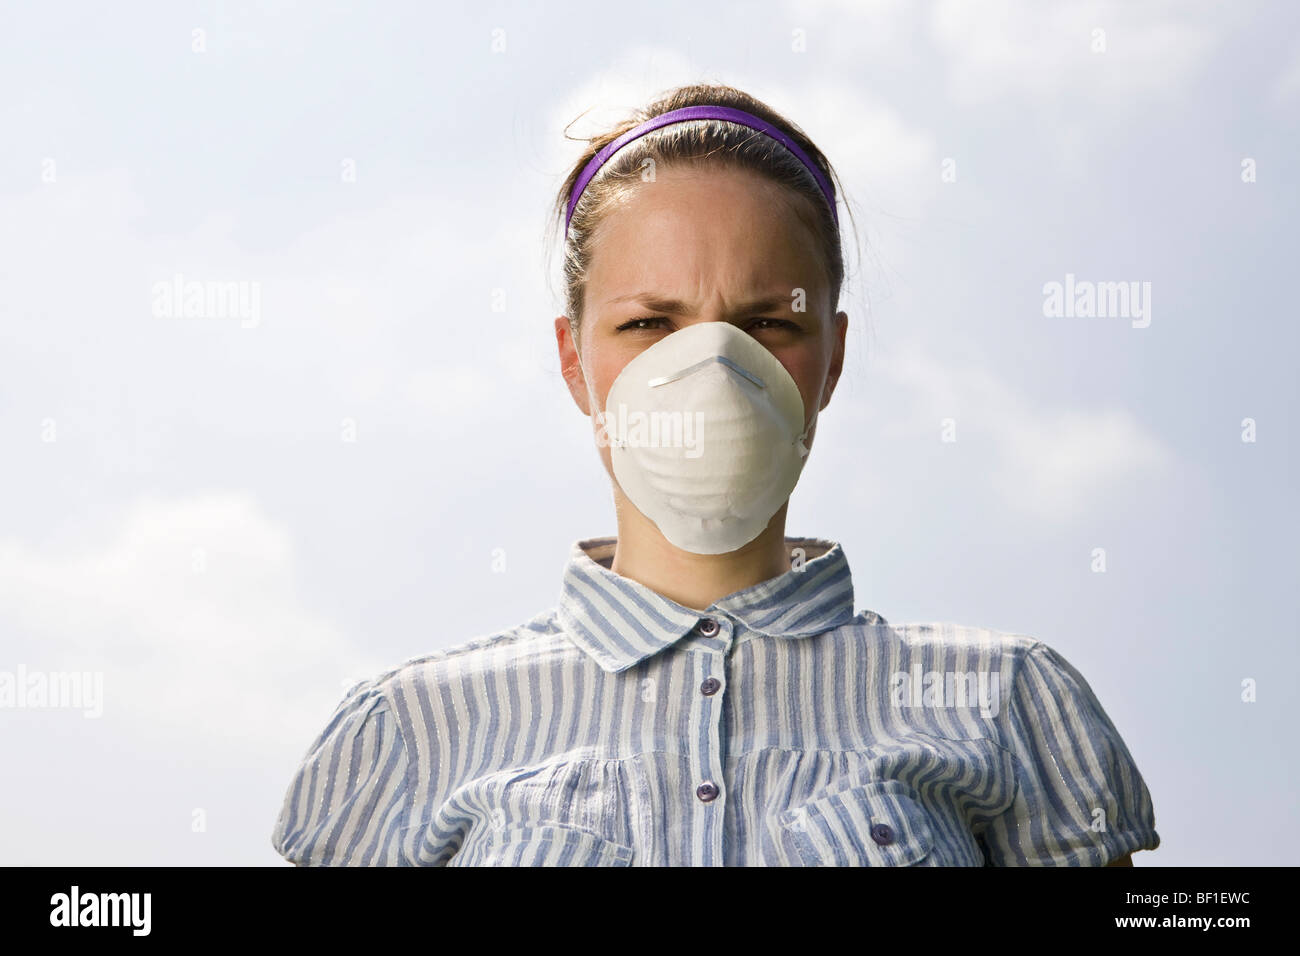 A young woman wearing a pollution mask - Stock Image